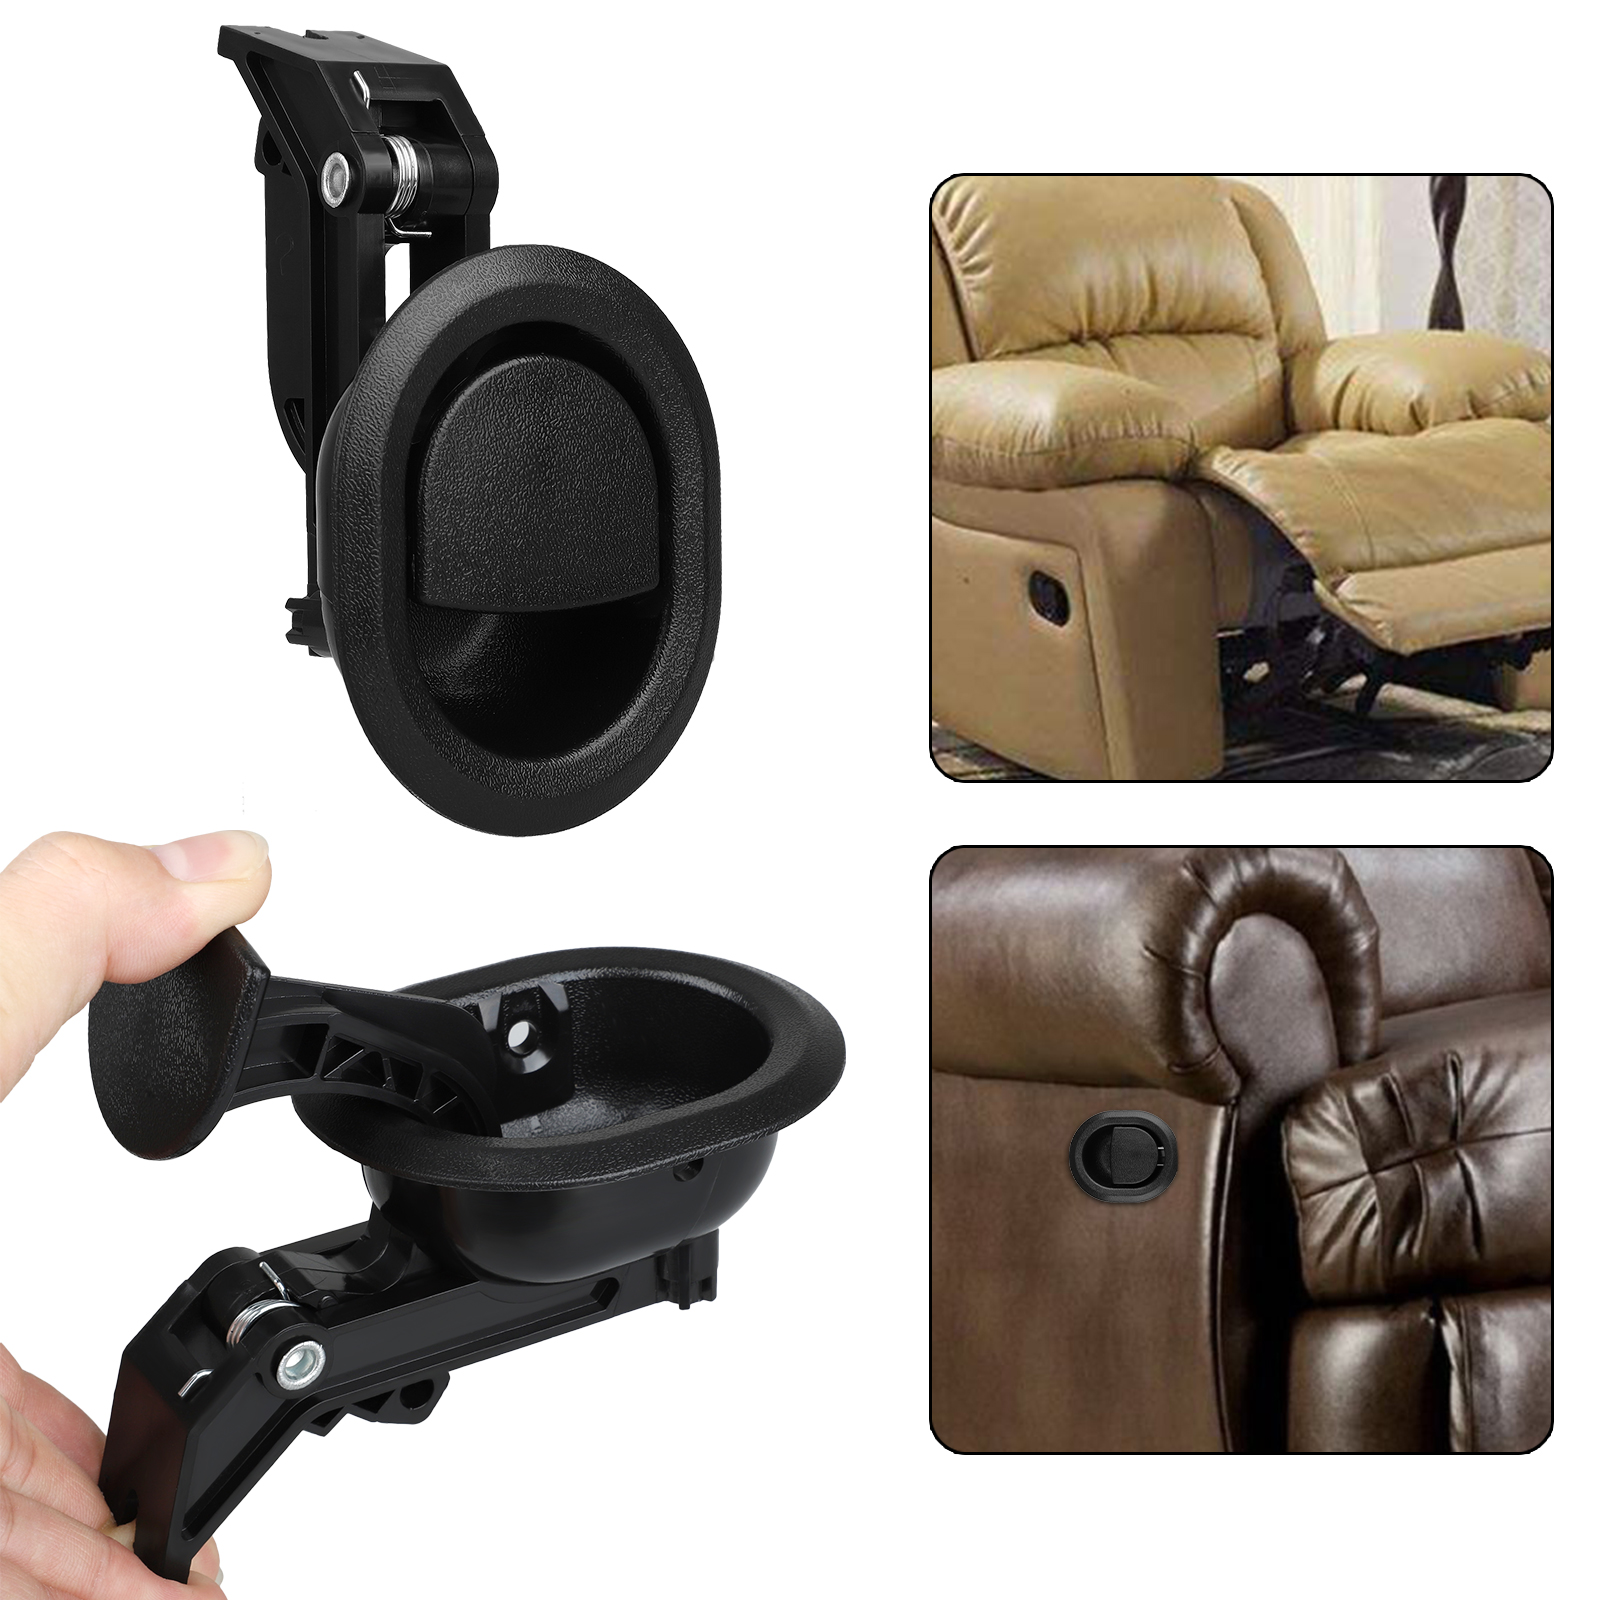 Astounding Details About Black Recliner Replacement Pull Handle Chair Sofa Couch Release Lever Universal Alphanode Cool Chair Designs And Ideas Alphanodeonline